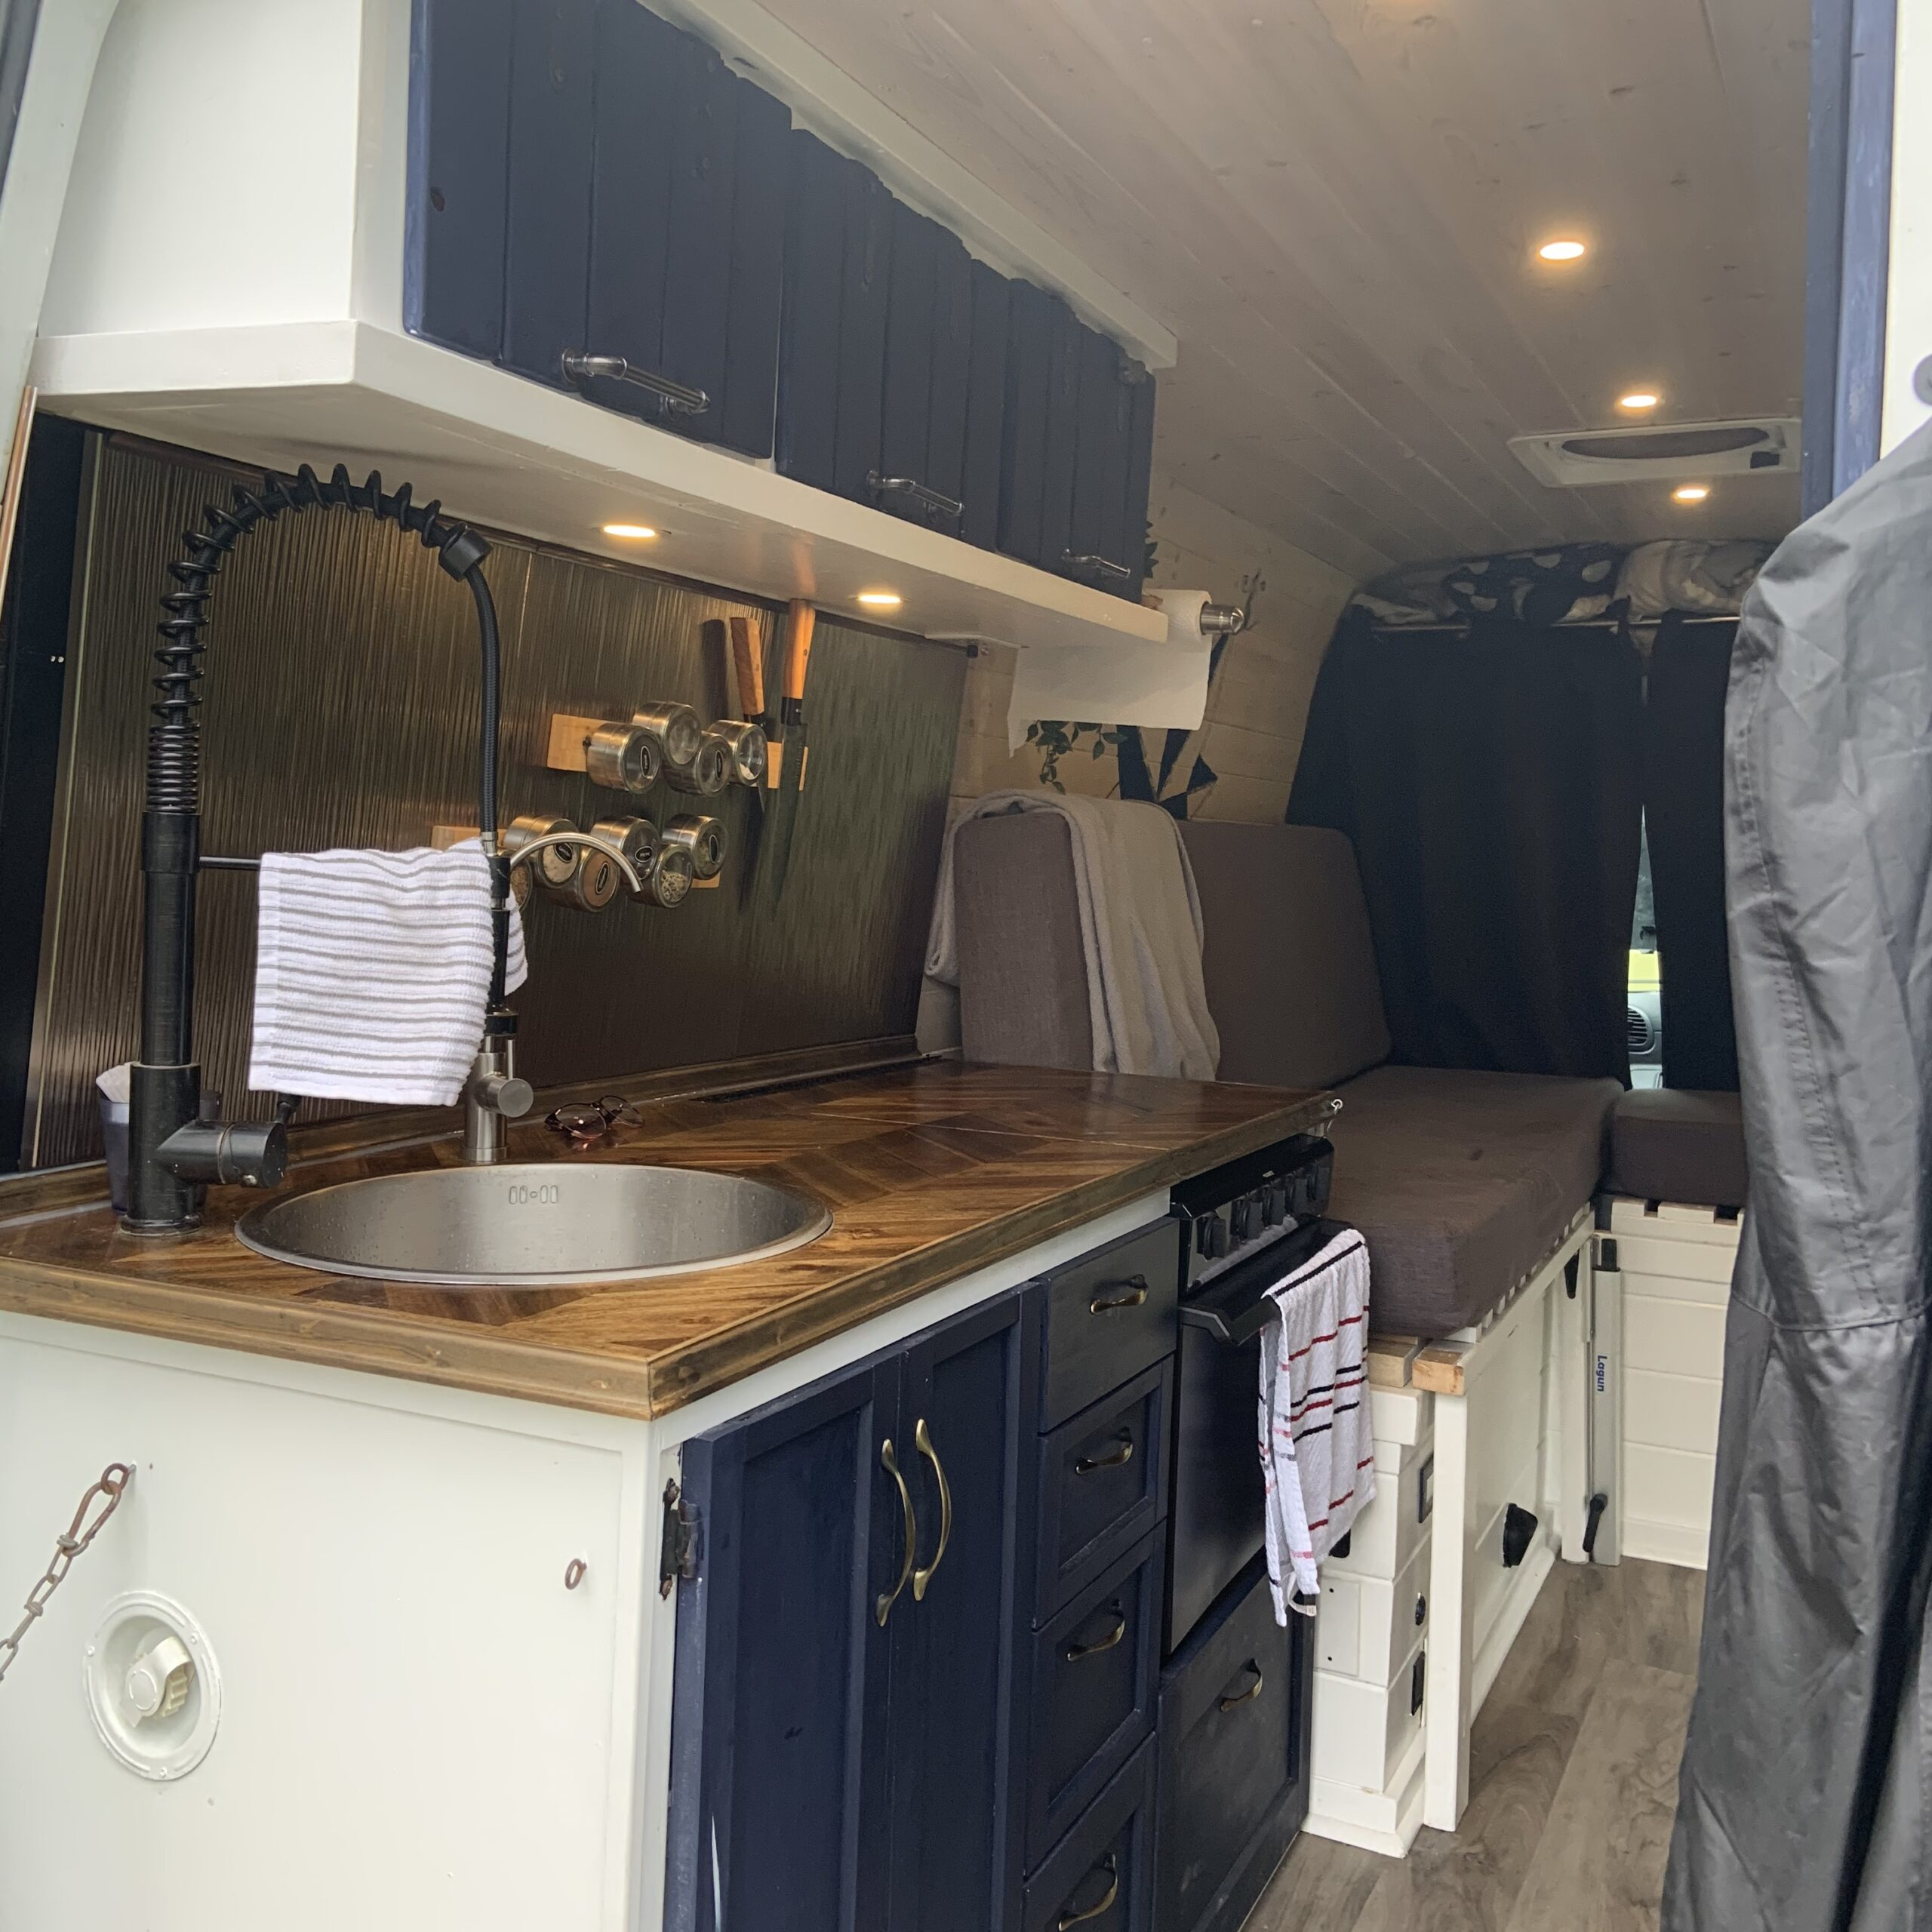 the kitchen view from the back of the van